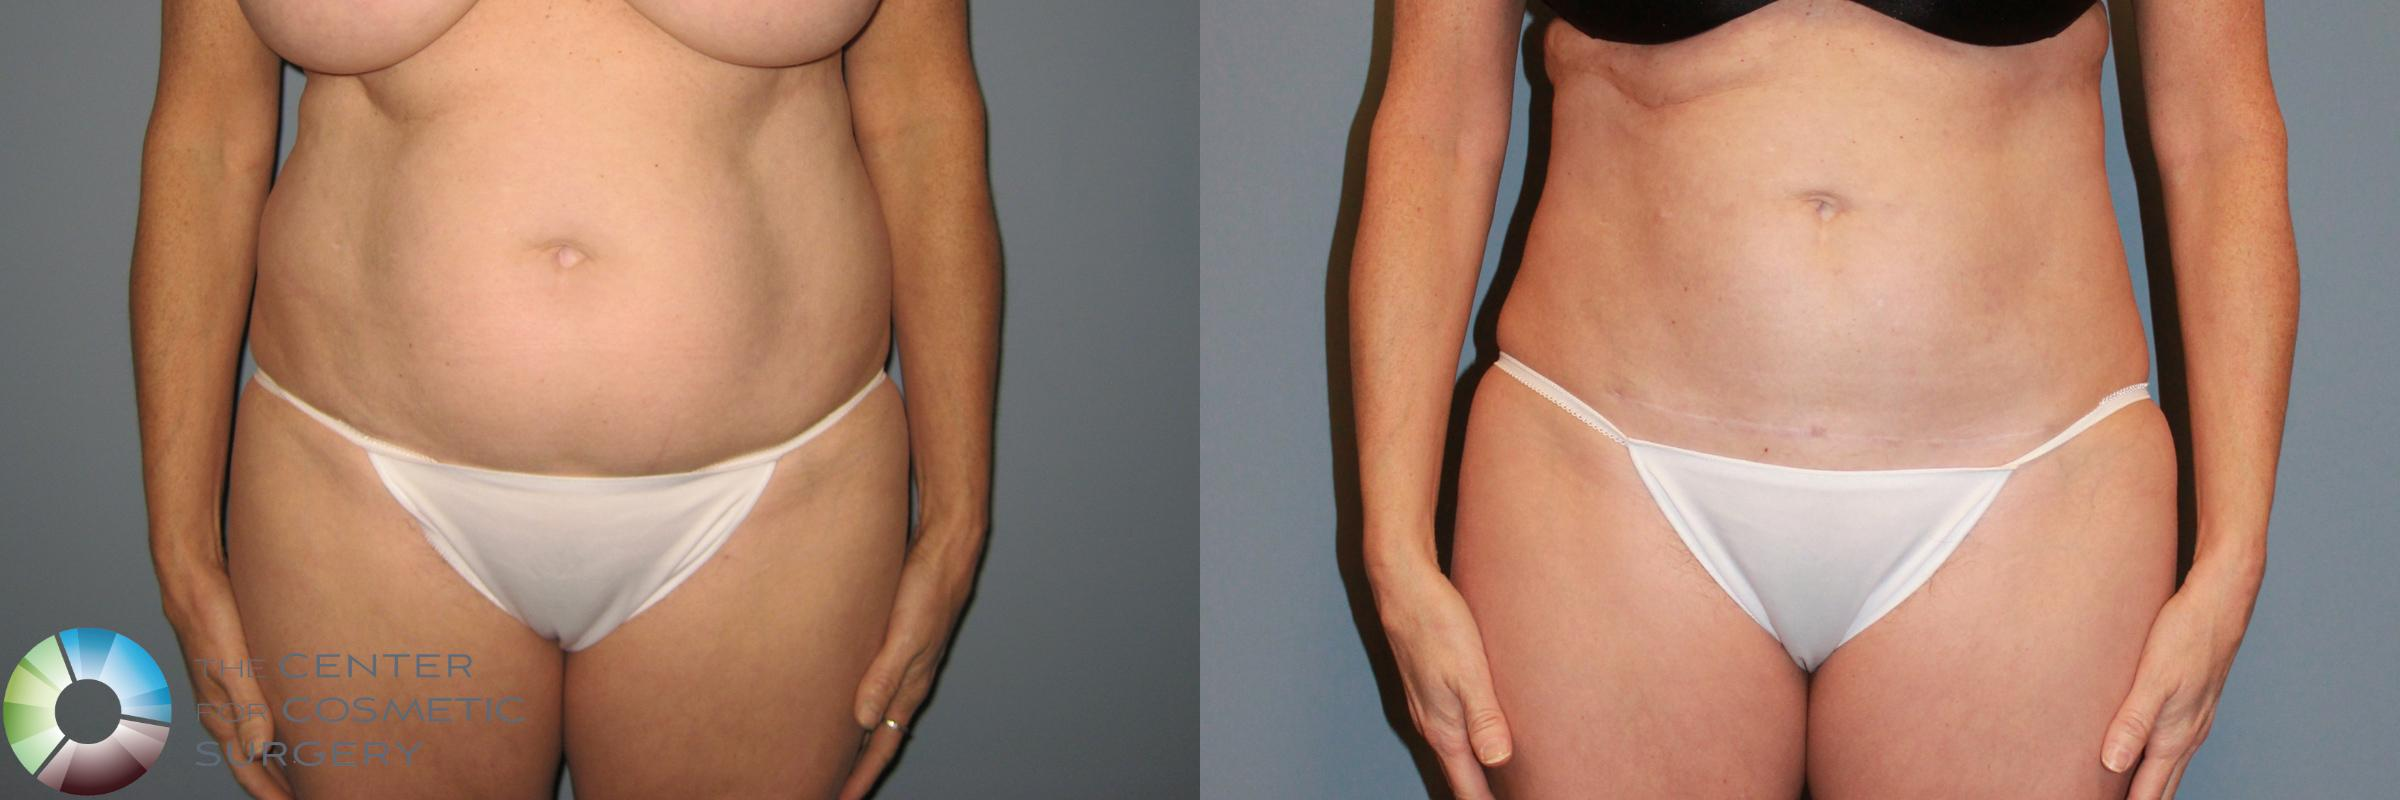 Power-assisted Liposuction Case 869 Before & After View #1 | Golden, CO | The Center for Cosmetic Surgery